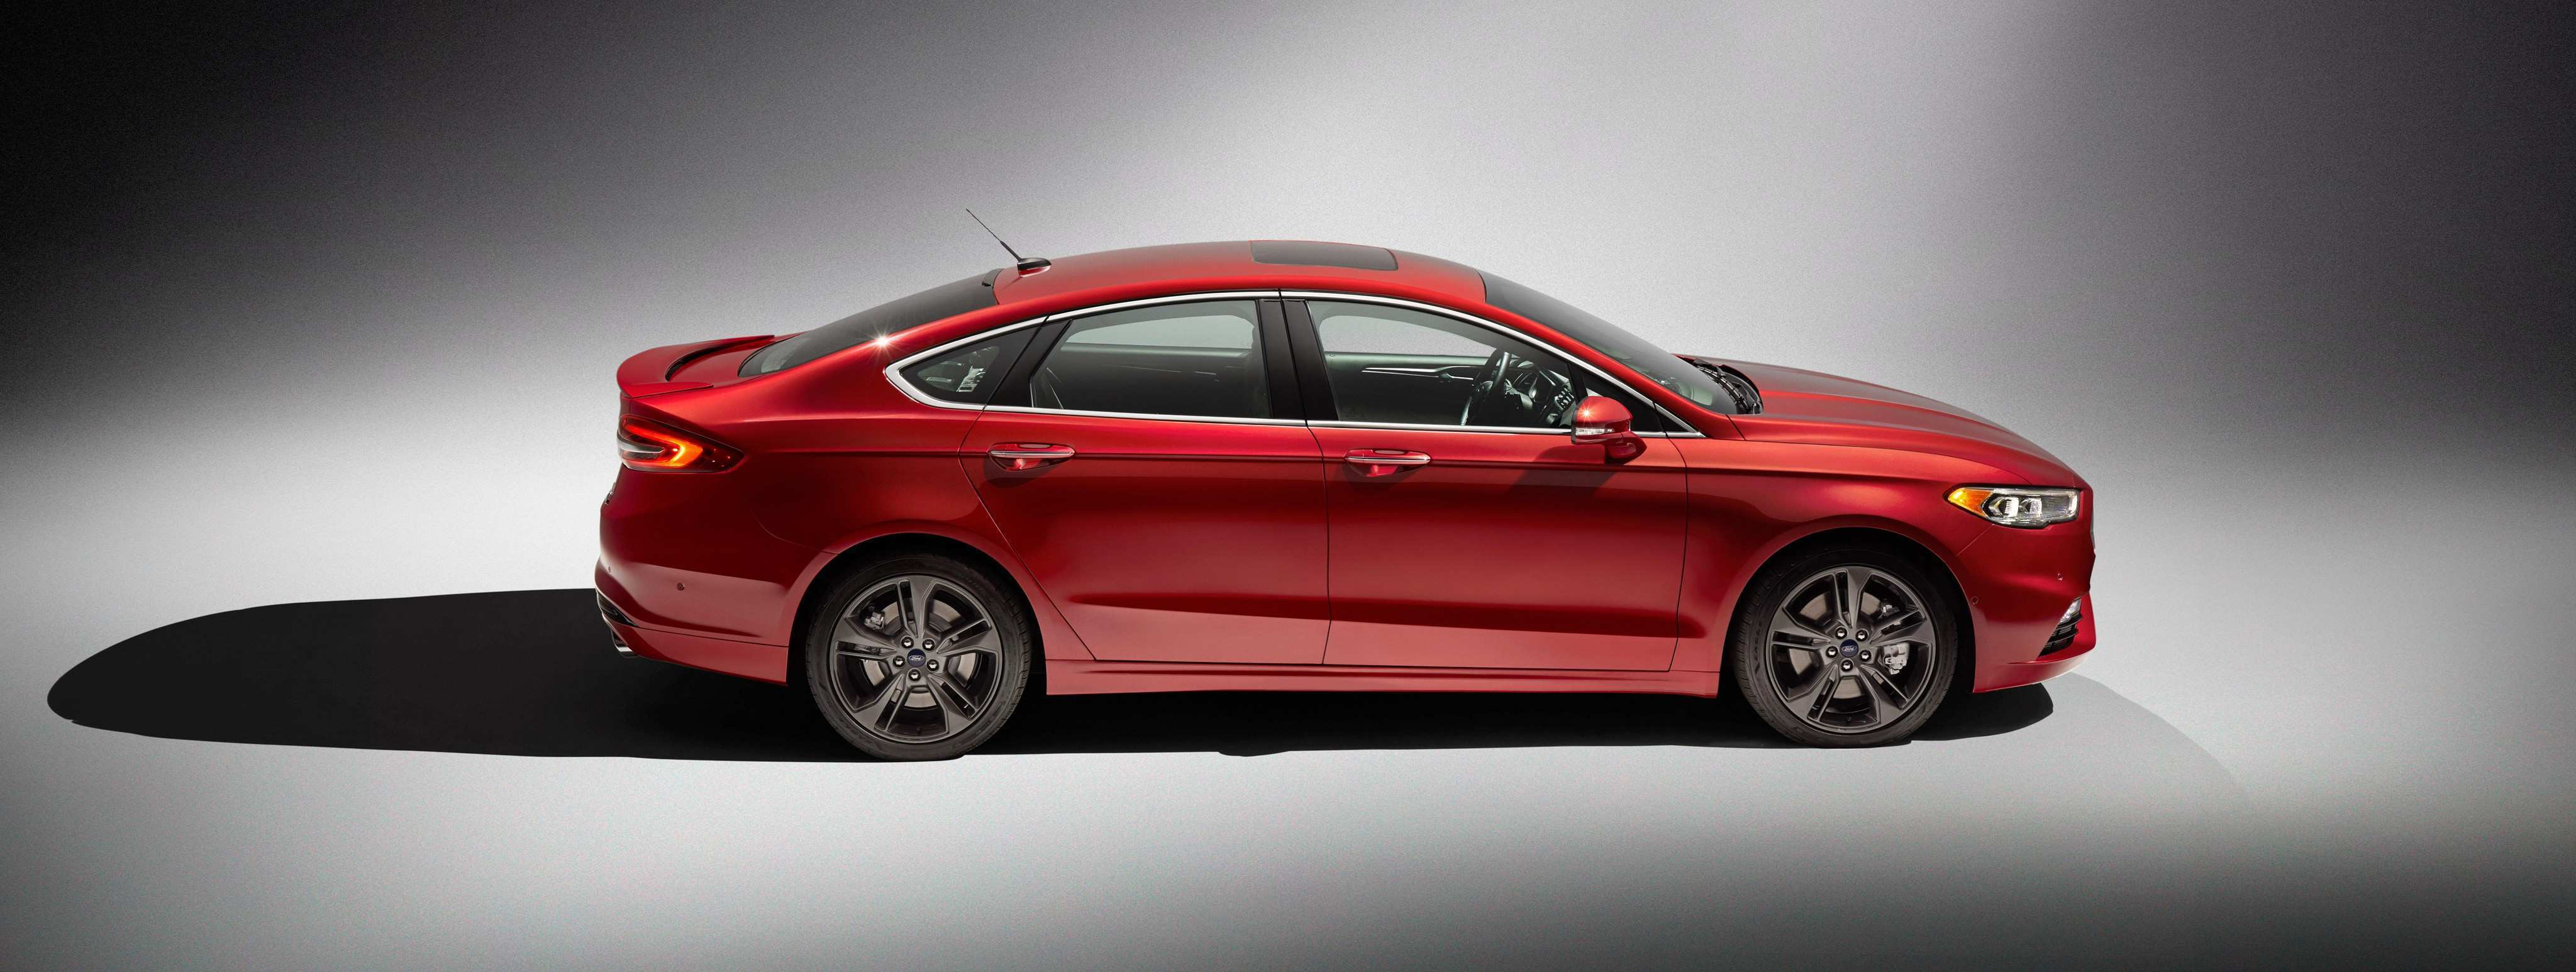 14 A 2020 Ford Fusion Images